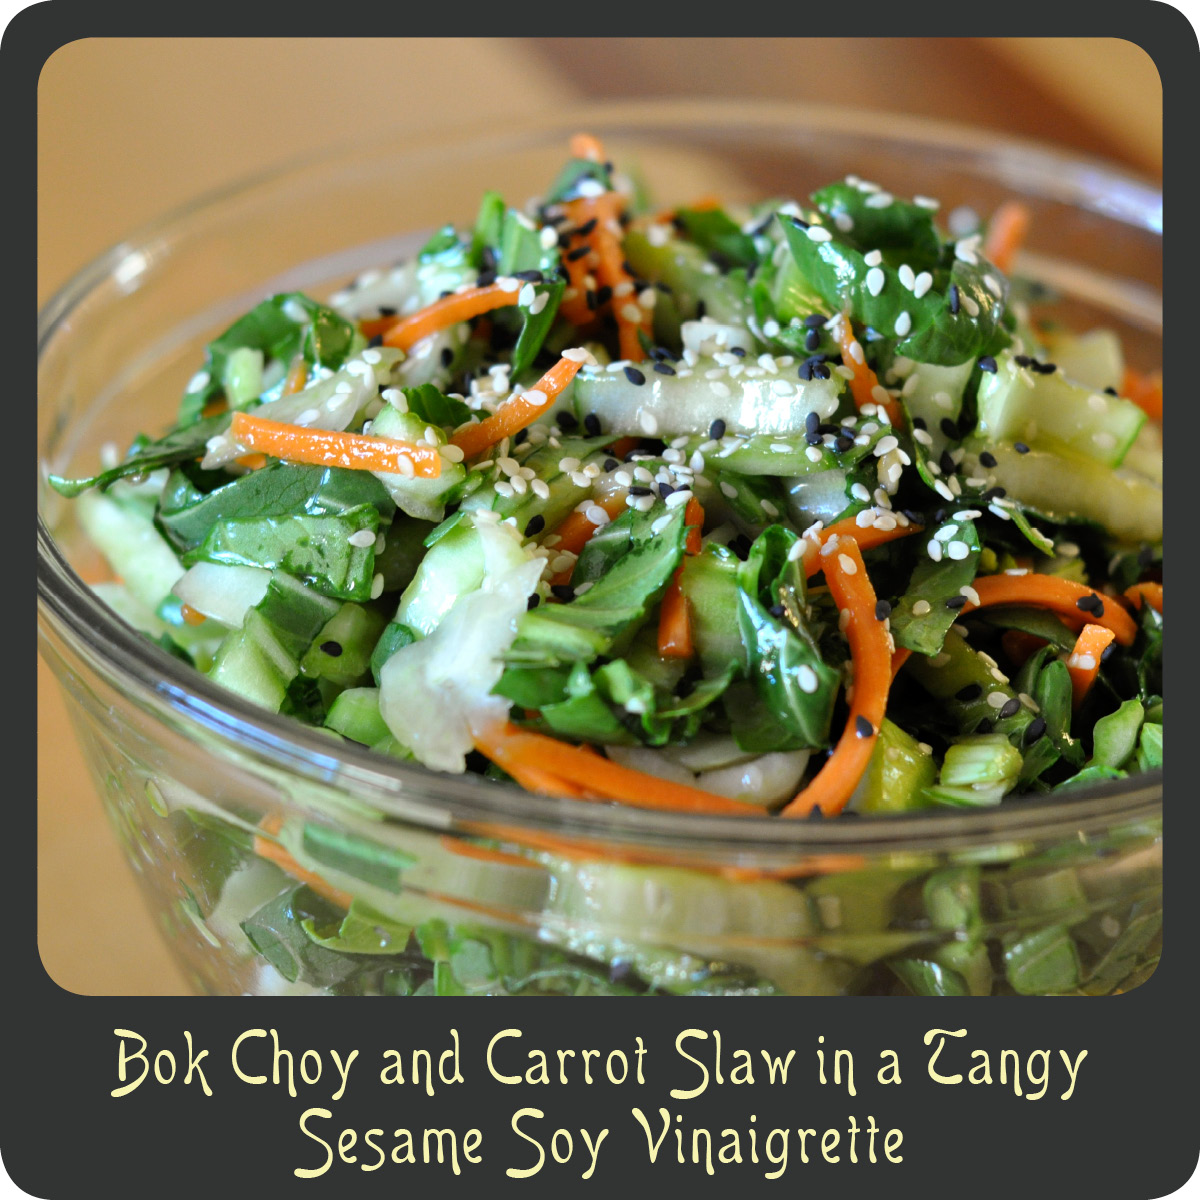 Recipe—Bok Choy and Carrot Slaw in a Tangy Sesame Soy Vinaigrette